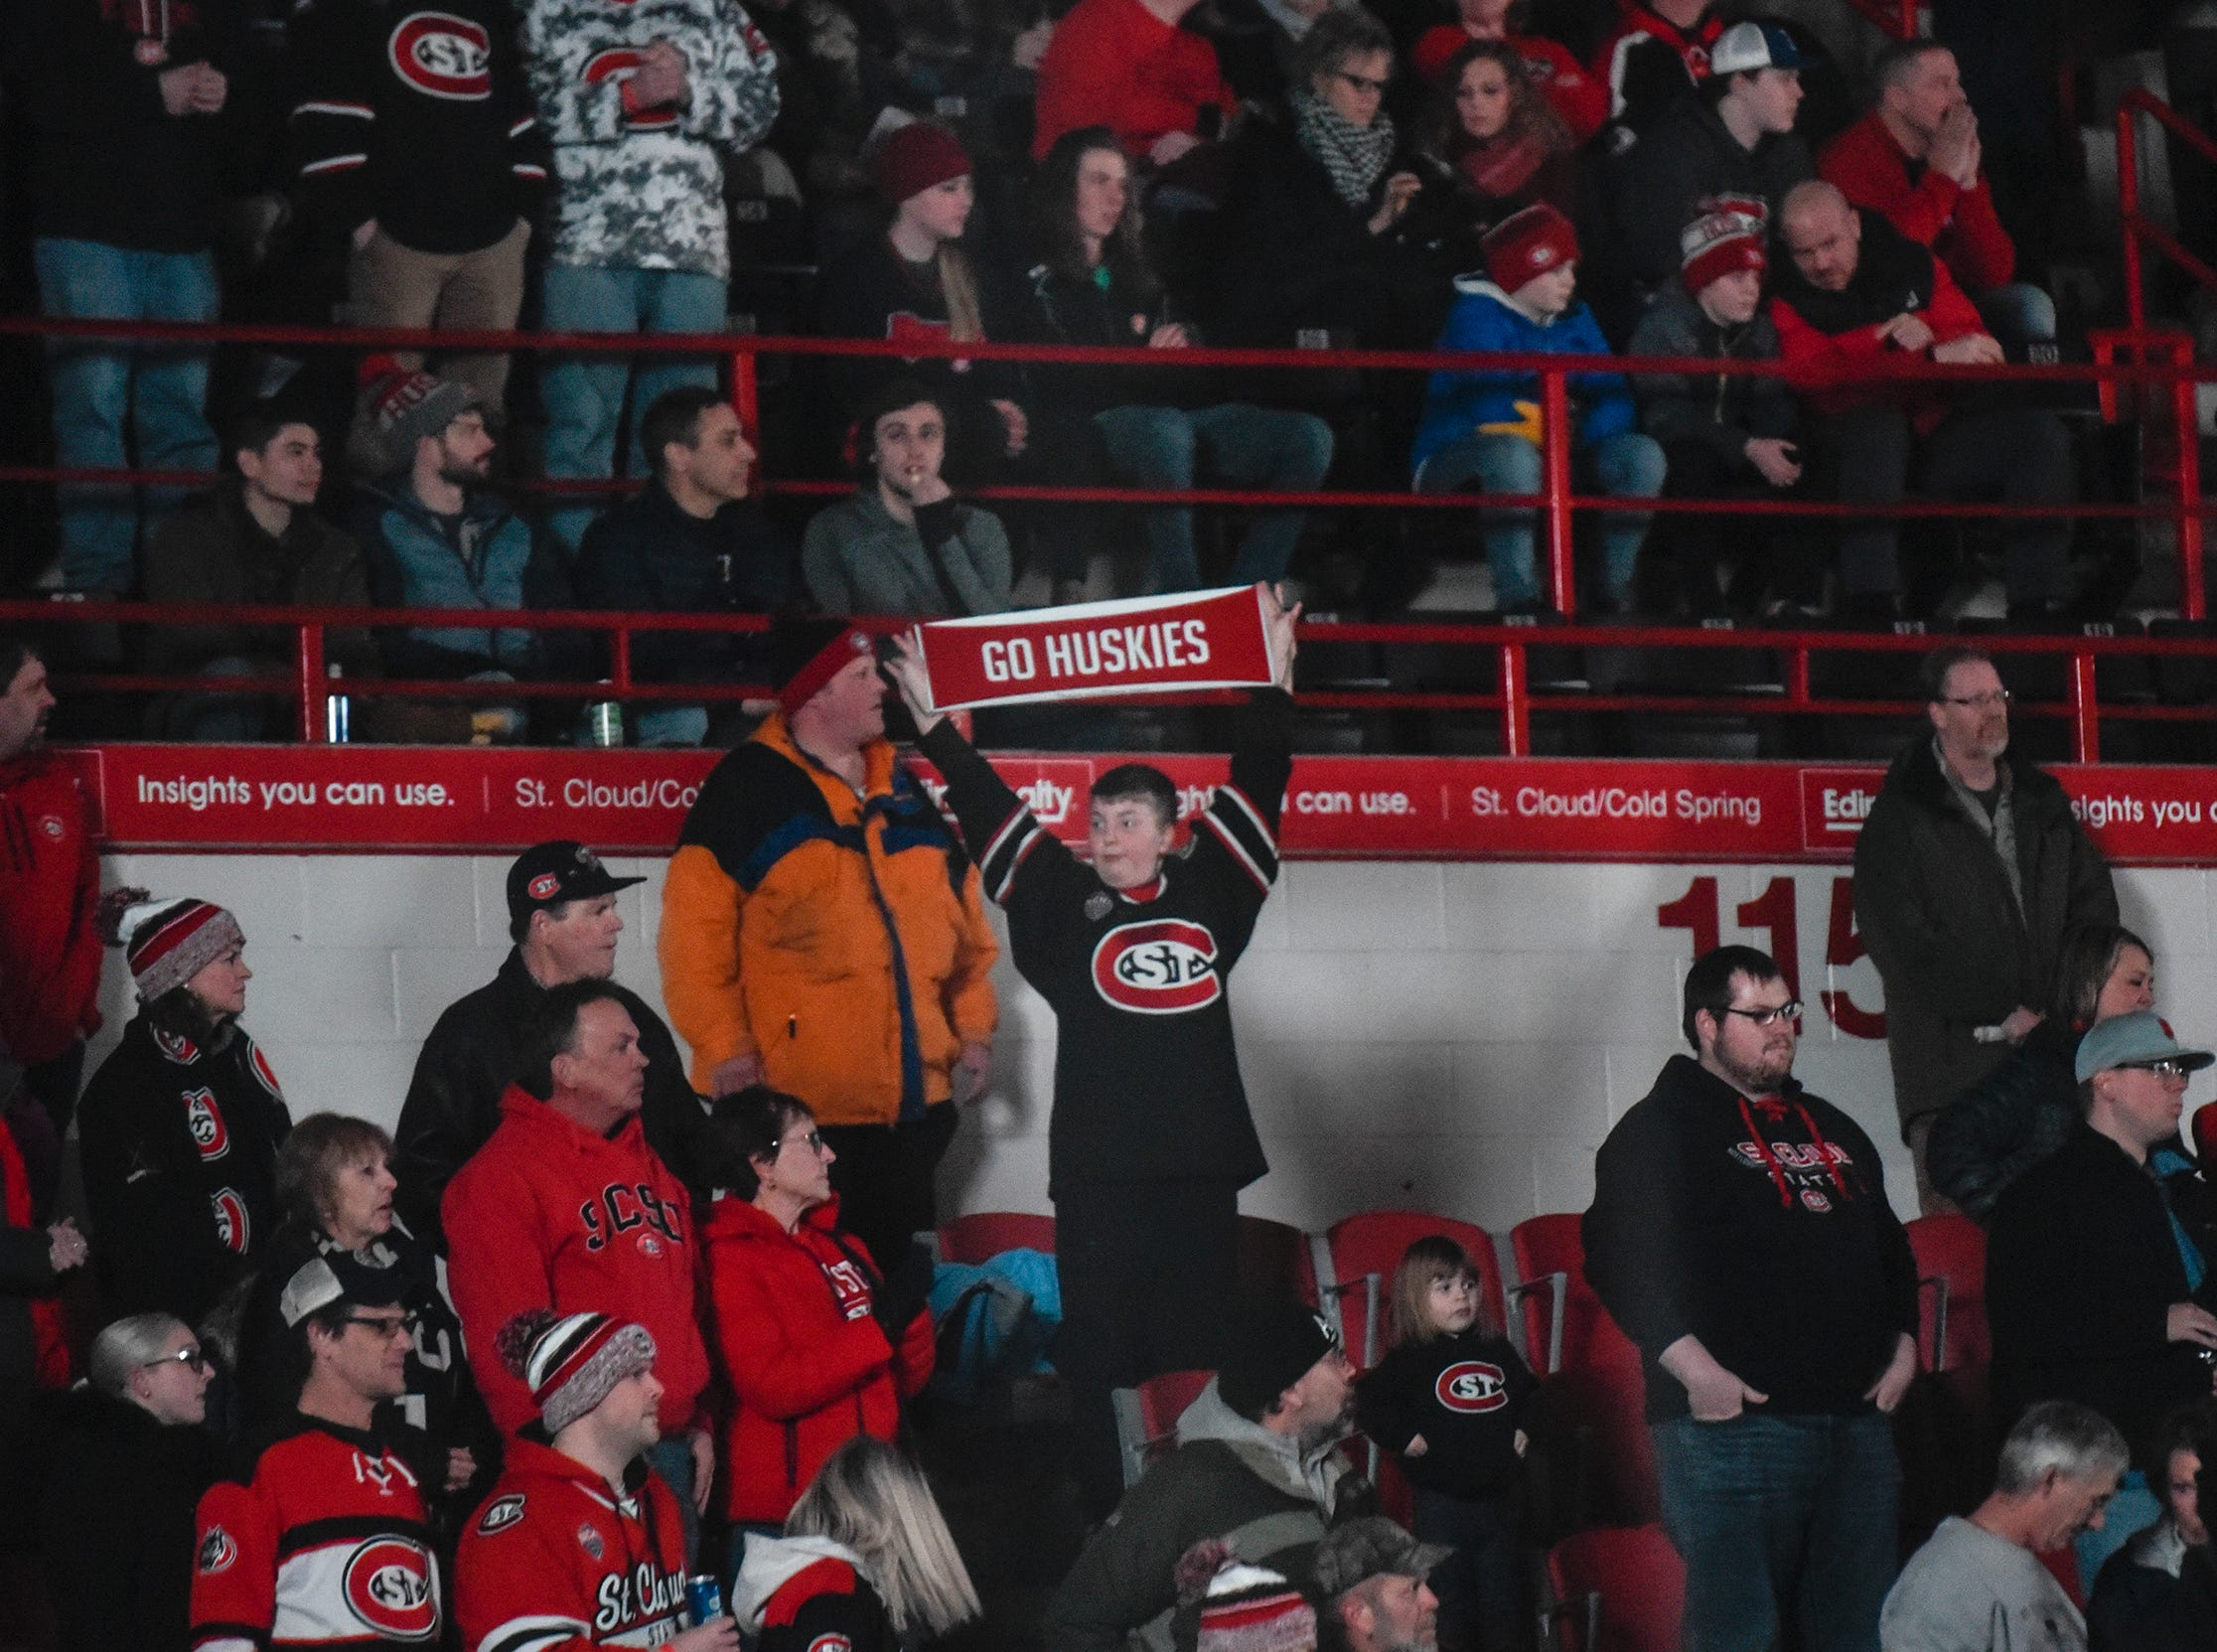 A fan holds a sign during the first period of the Friday, Feb. 8, game at the Herb Brooks National Hockey Center in St. Cloud.